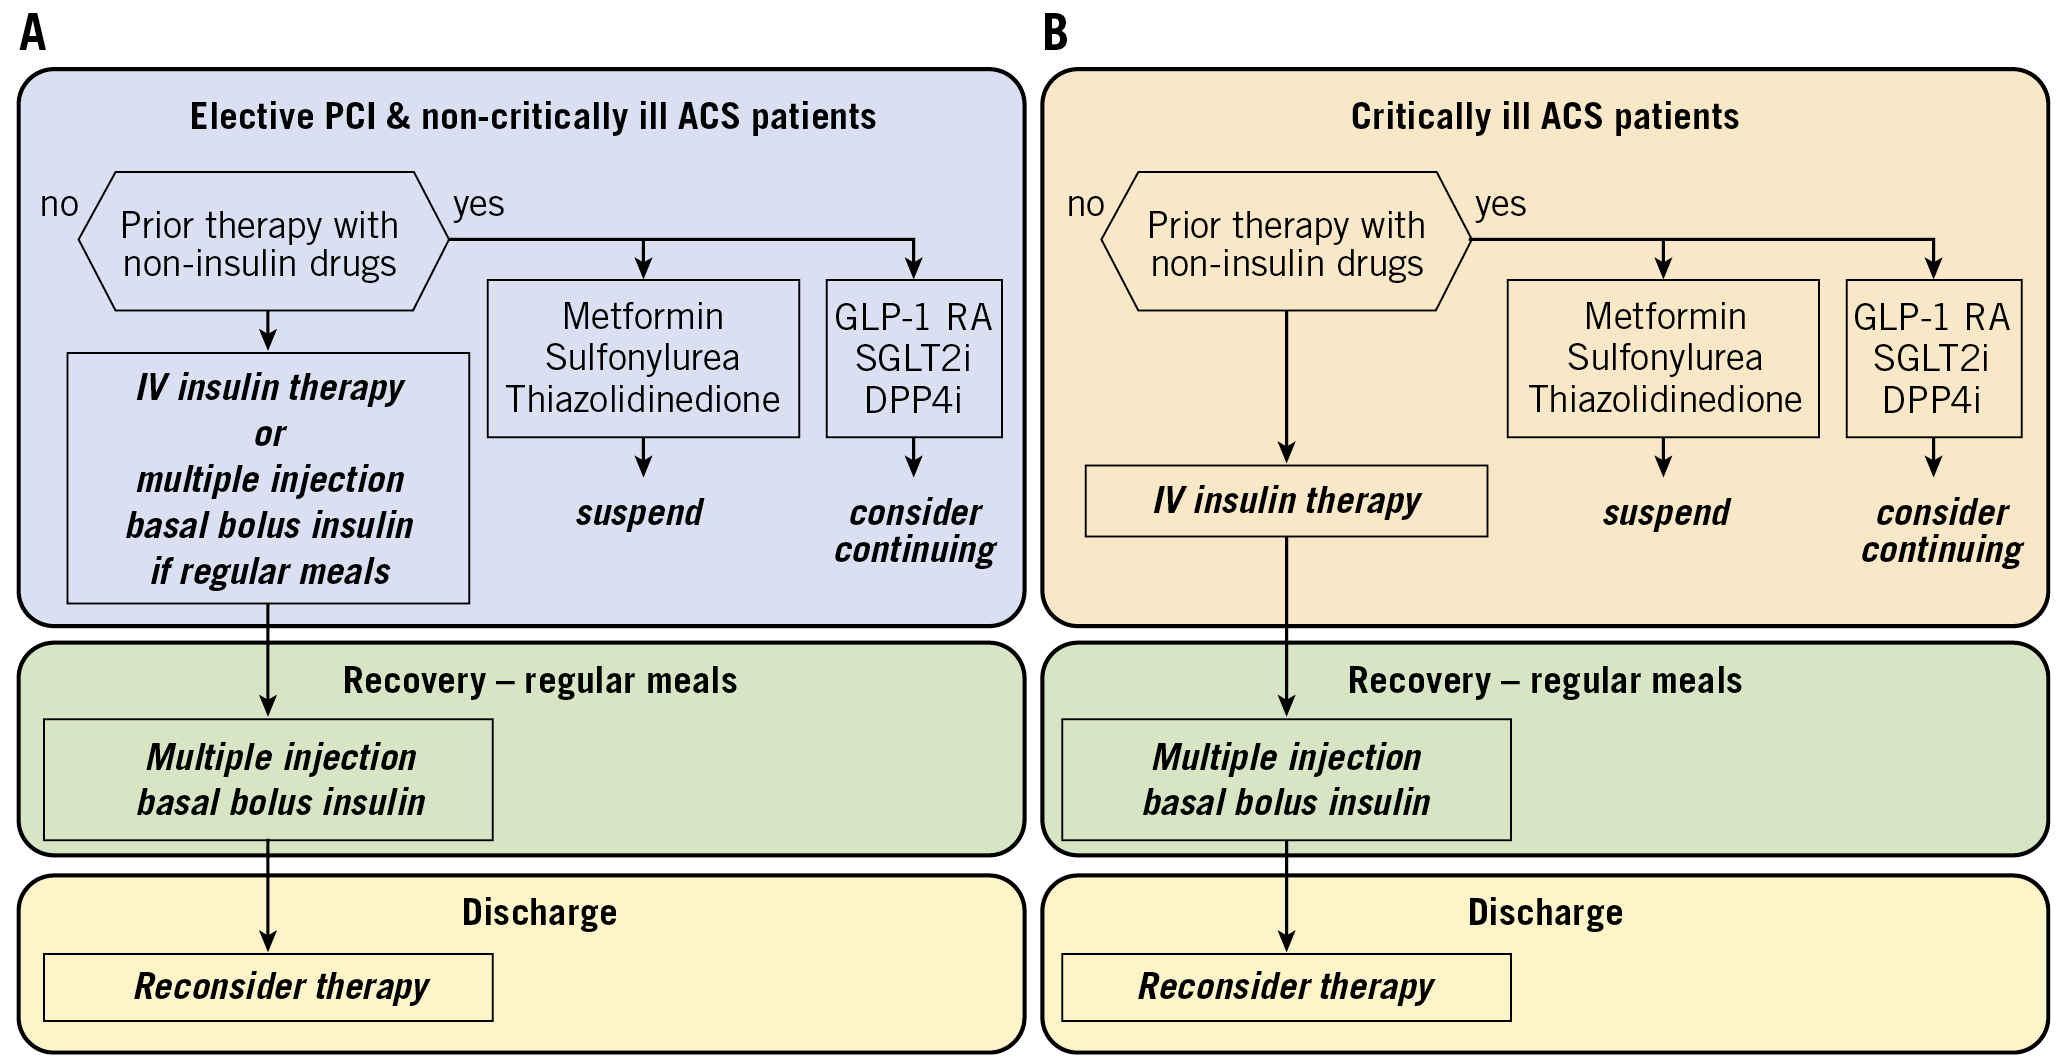 Figure 2. Flow chart for the management of hyperglycaemia. A) In non-critically ill ACS patients and patients undergoing elective PCI. B) In critically ill ACS patients. ACS: acute coronary syndrome; DDP4: di-peptidyl peptidase 4; GLP-1 RA: glucagon-like peptide-1 receptor agonist; PCI: percutaneous coronary intervention; SGLT2: sodium-glucose transporter 2 inhibitor